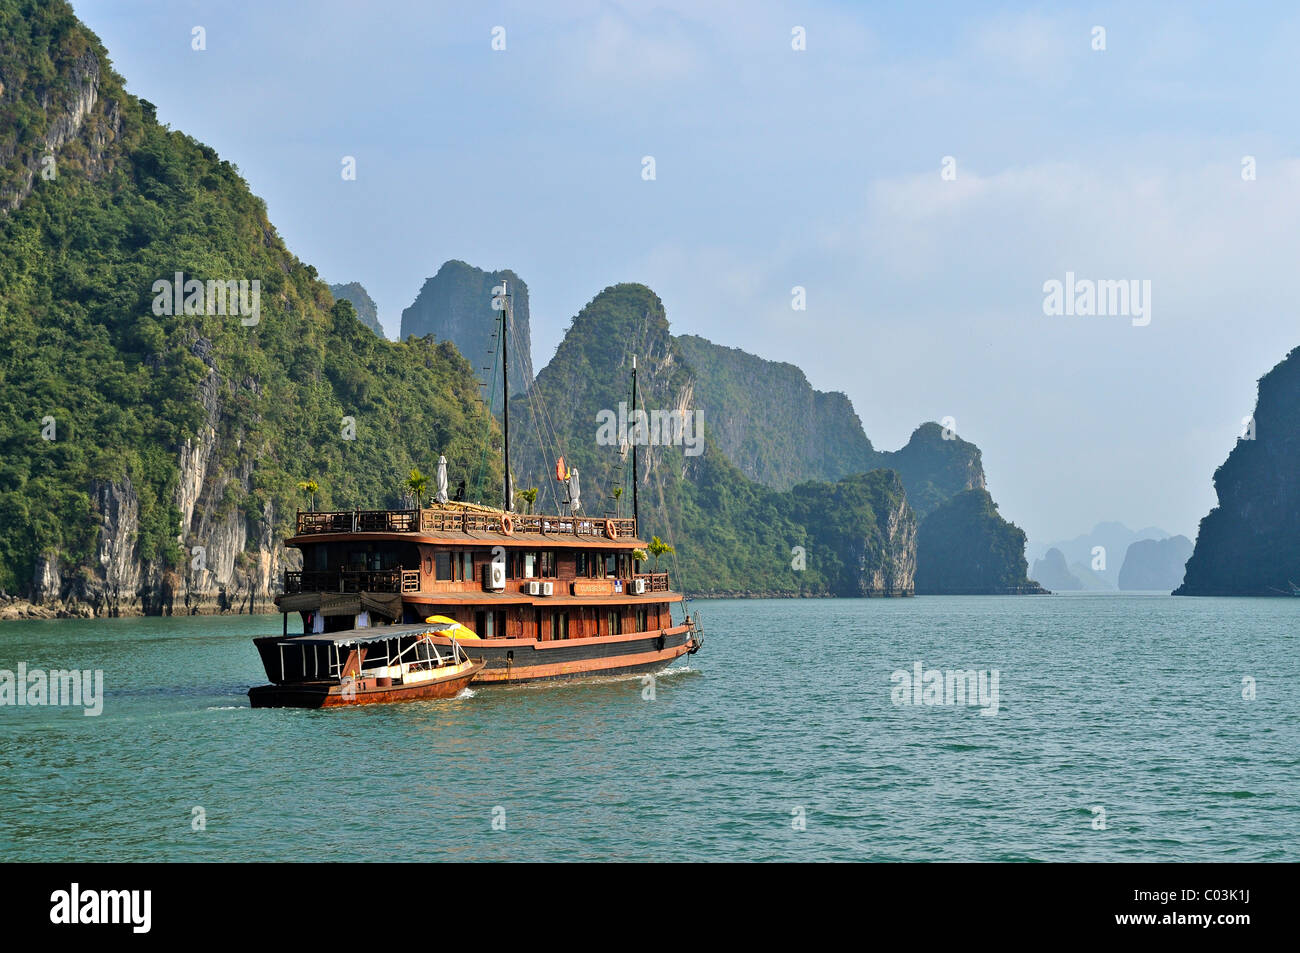 Junk in Halong Bay, Vietnam, Southeast Asia - Stock Image